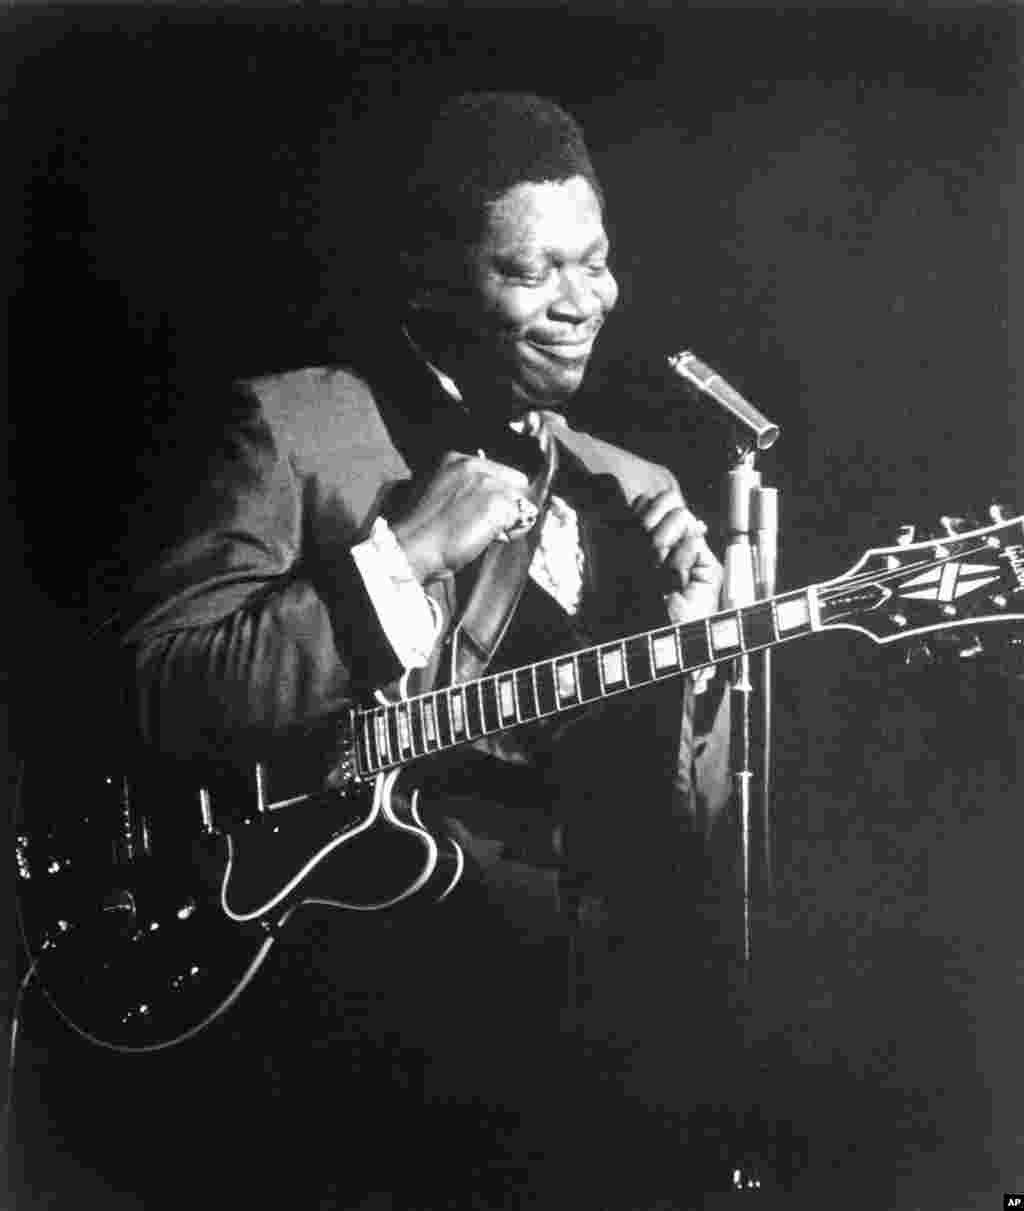 Bluesman extraordinaire, B.B. King